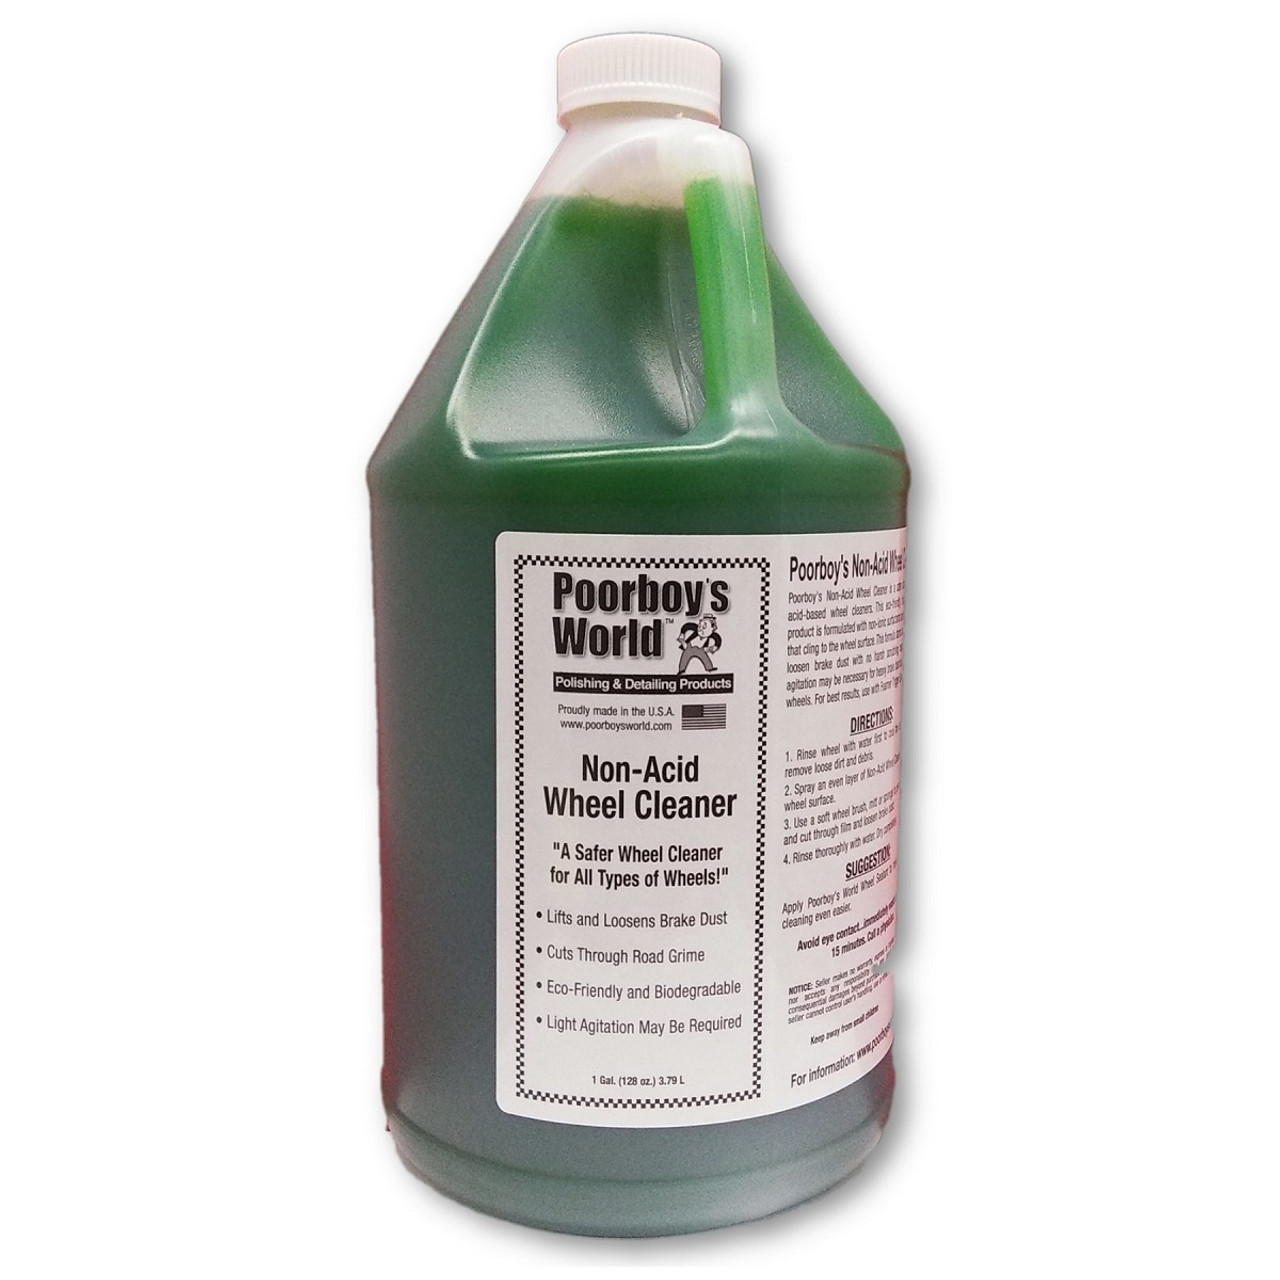 Poorboy's World Non-Acid Wheel & Tire Cleaner Gallon